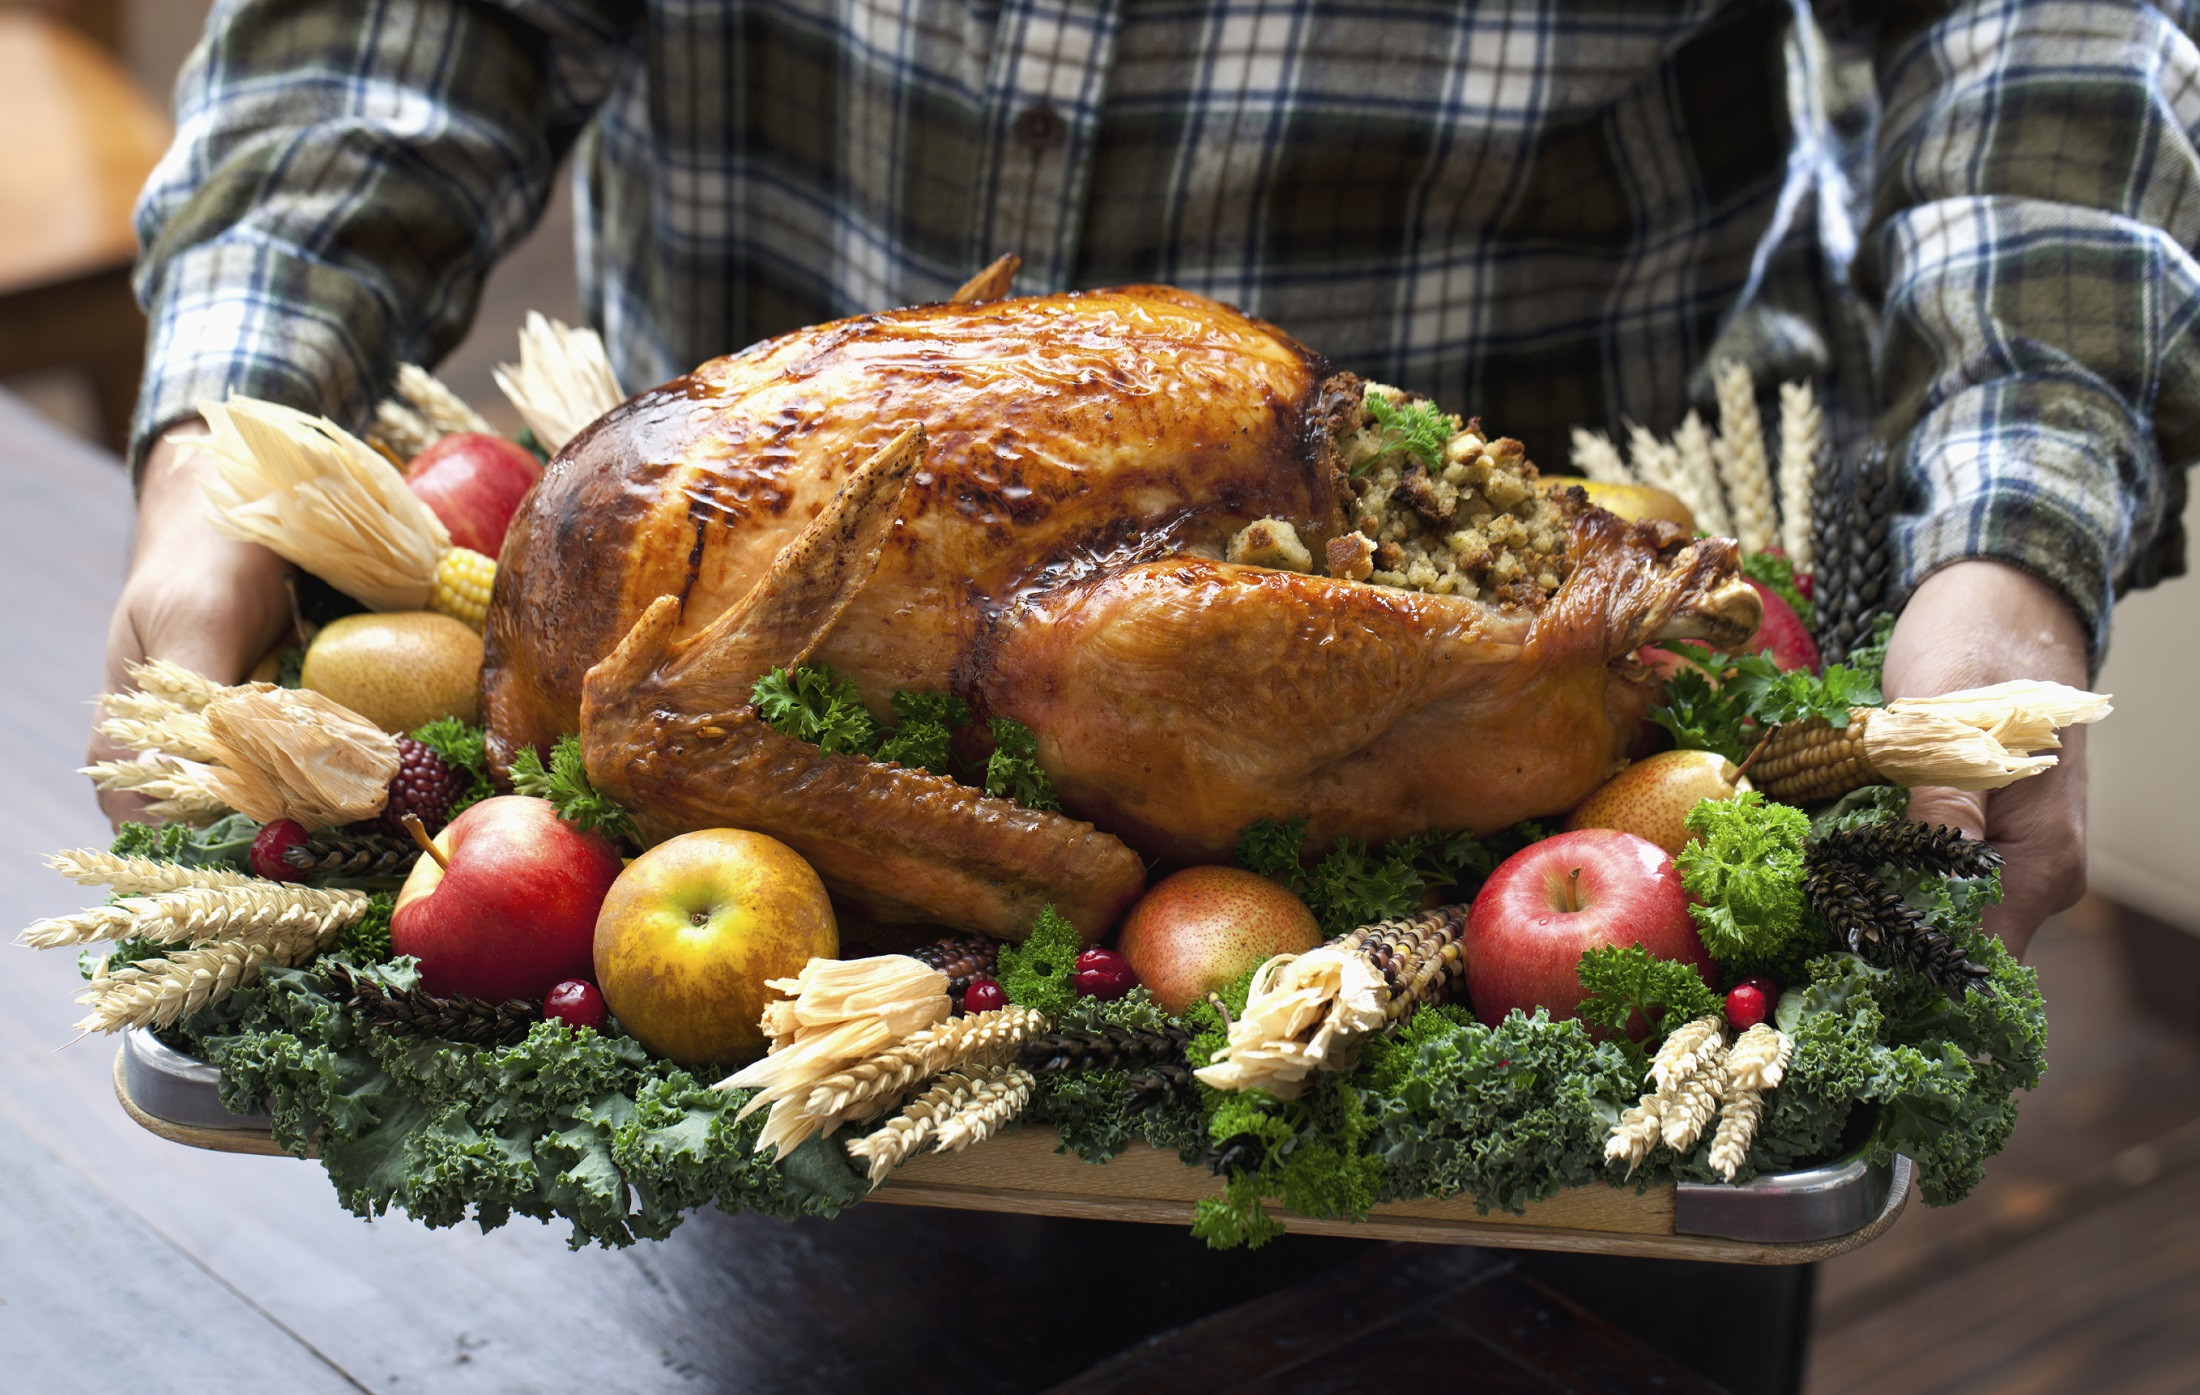 Turkey Dinner To Go  The Average Cost of a Thanksgiving Grocery List Is $69 01